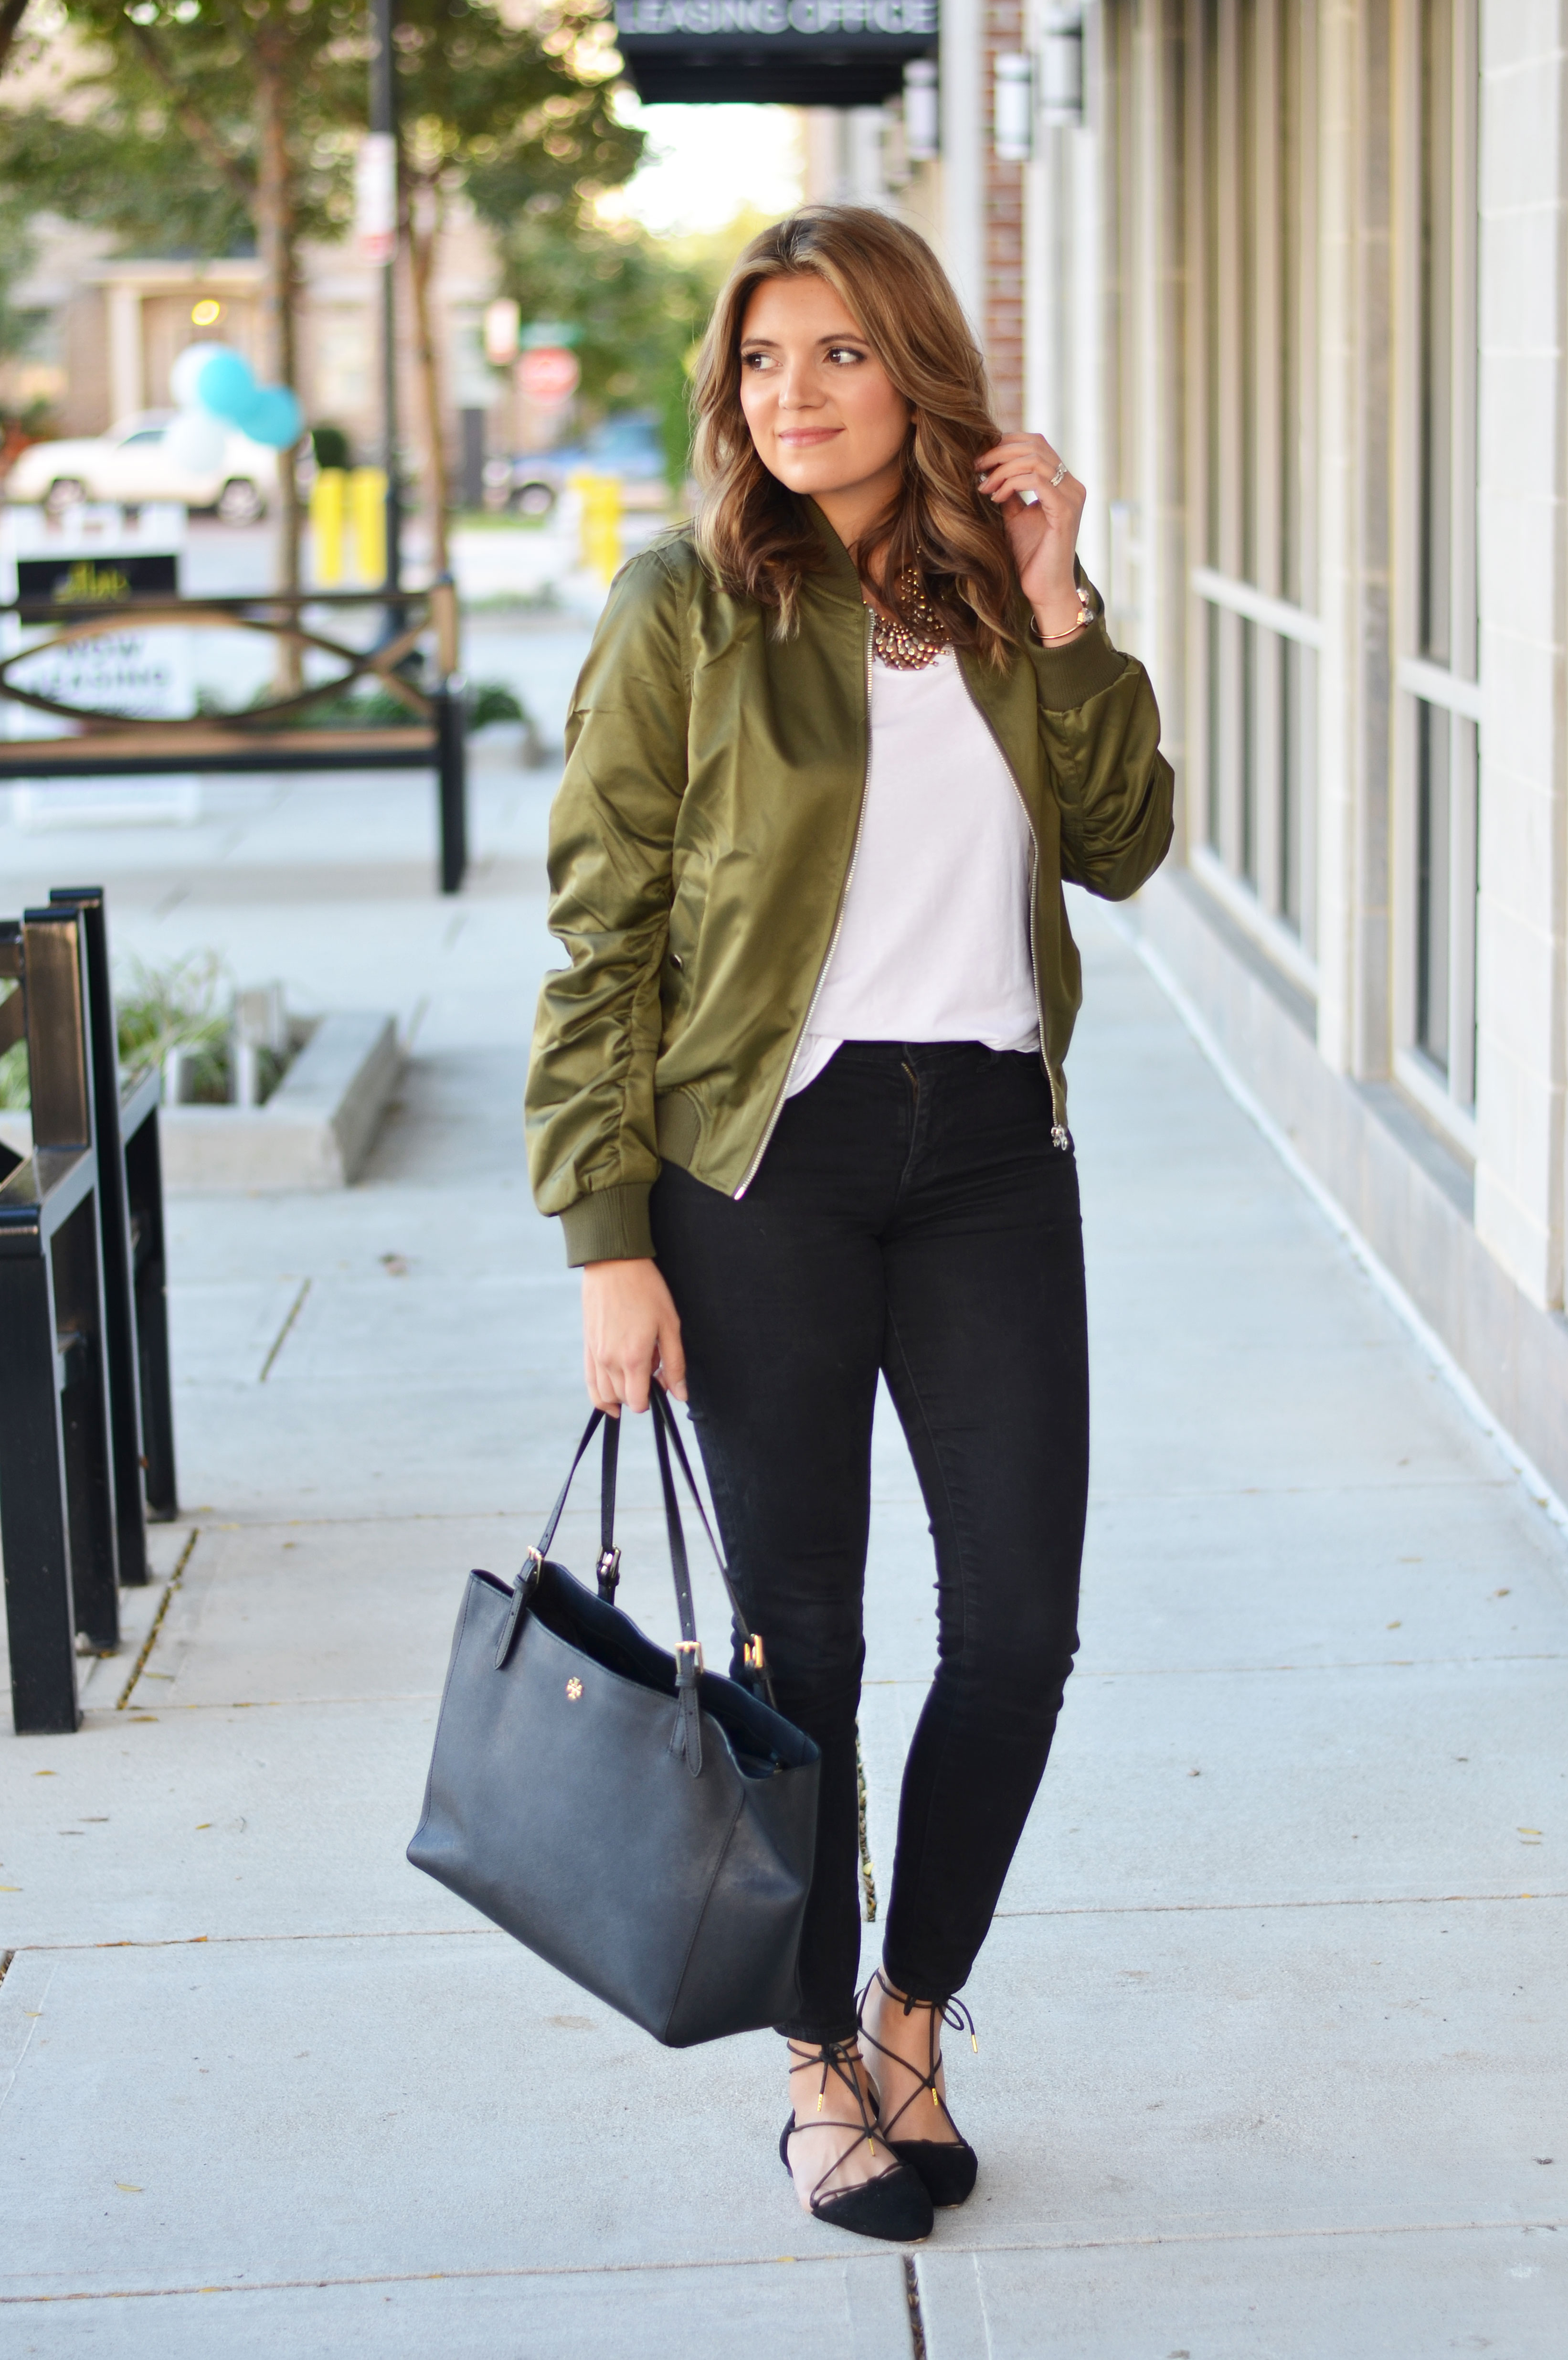 wear bomber jacket - green bomber jacket outfit | www.bylaurenm.com